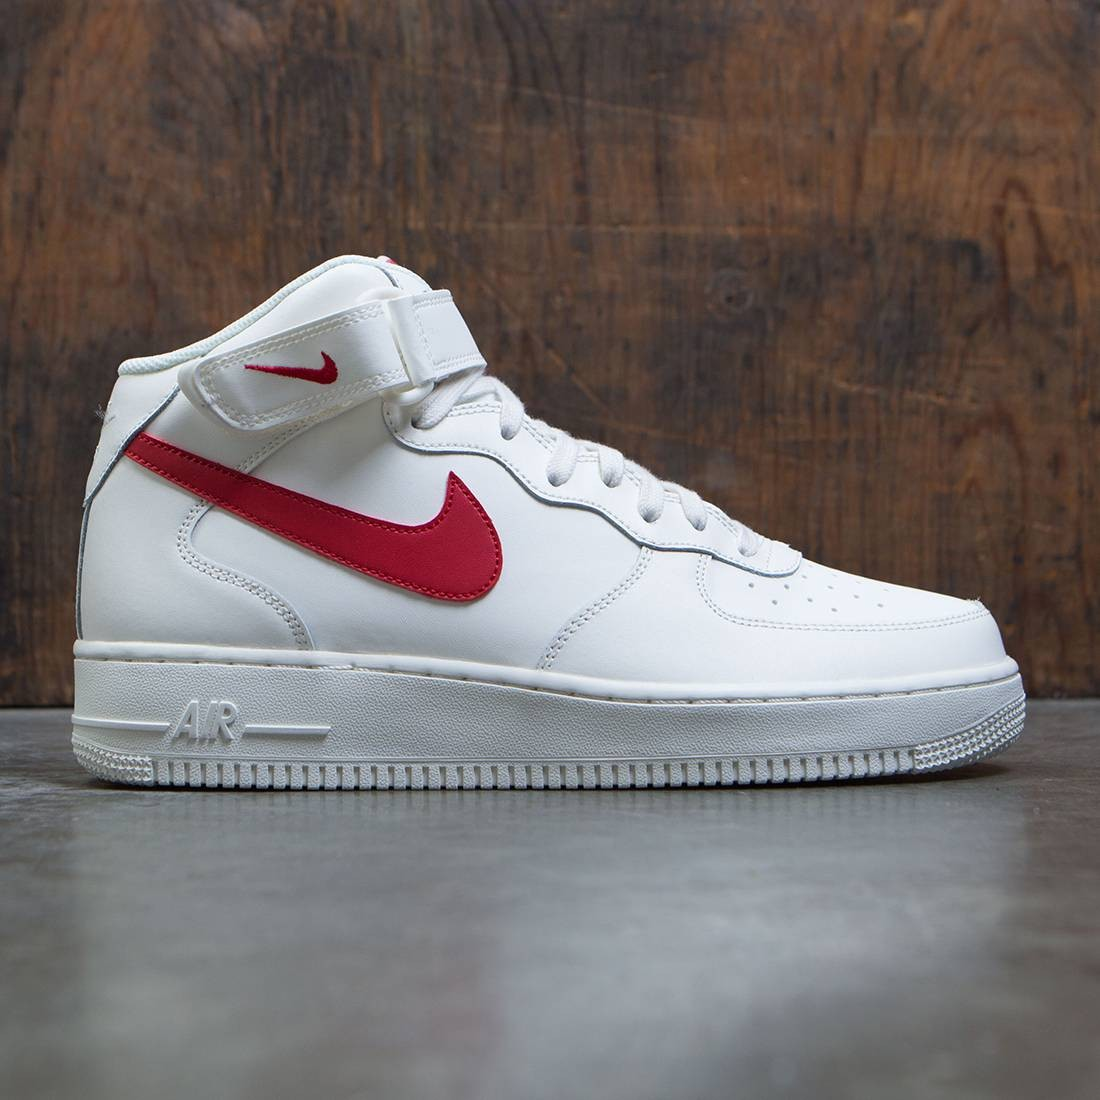 nike men air force 1 mid 07 sail university red. Black Bedroom Furniture Sets. Home Design Ideas